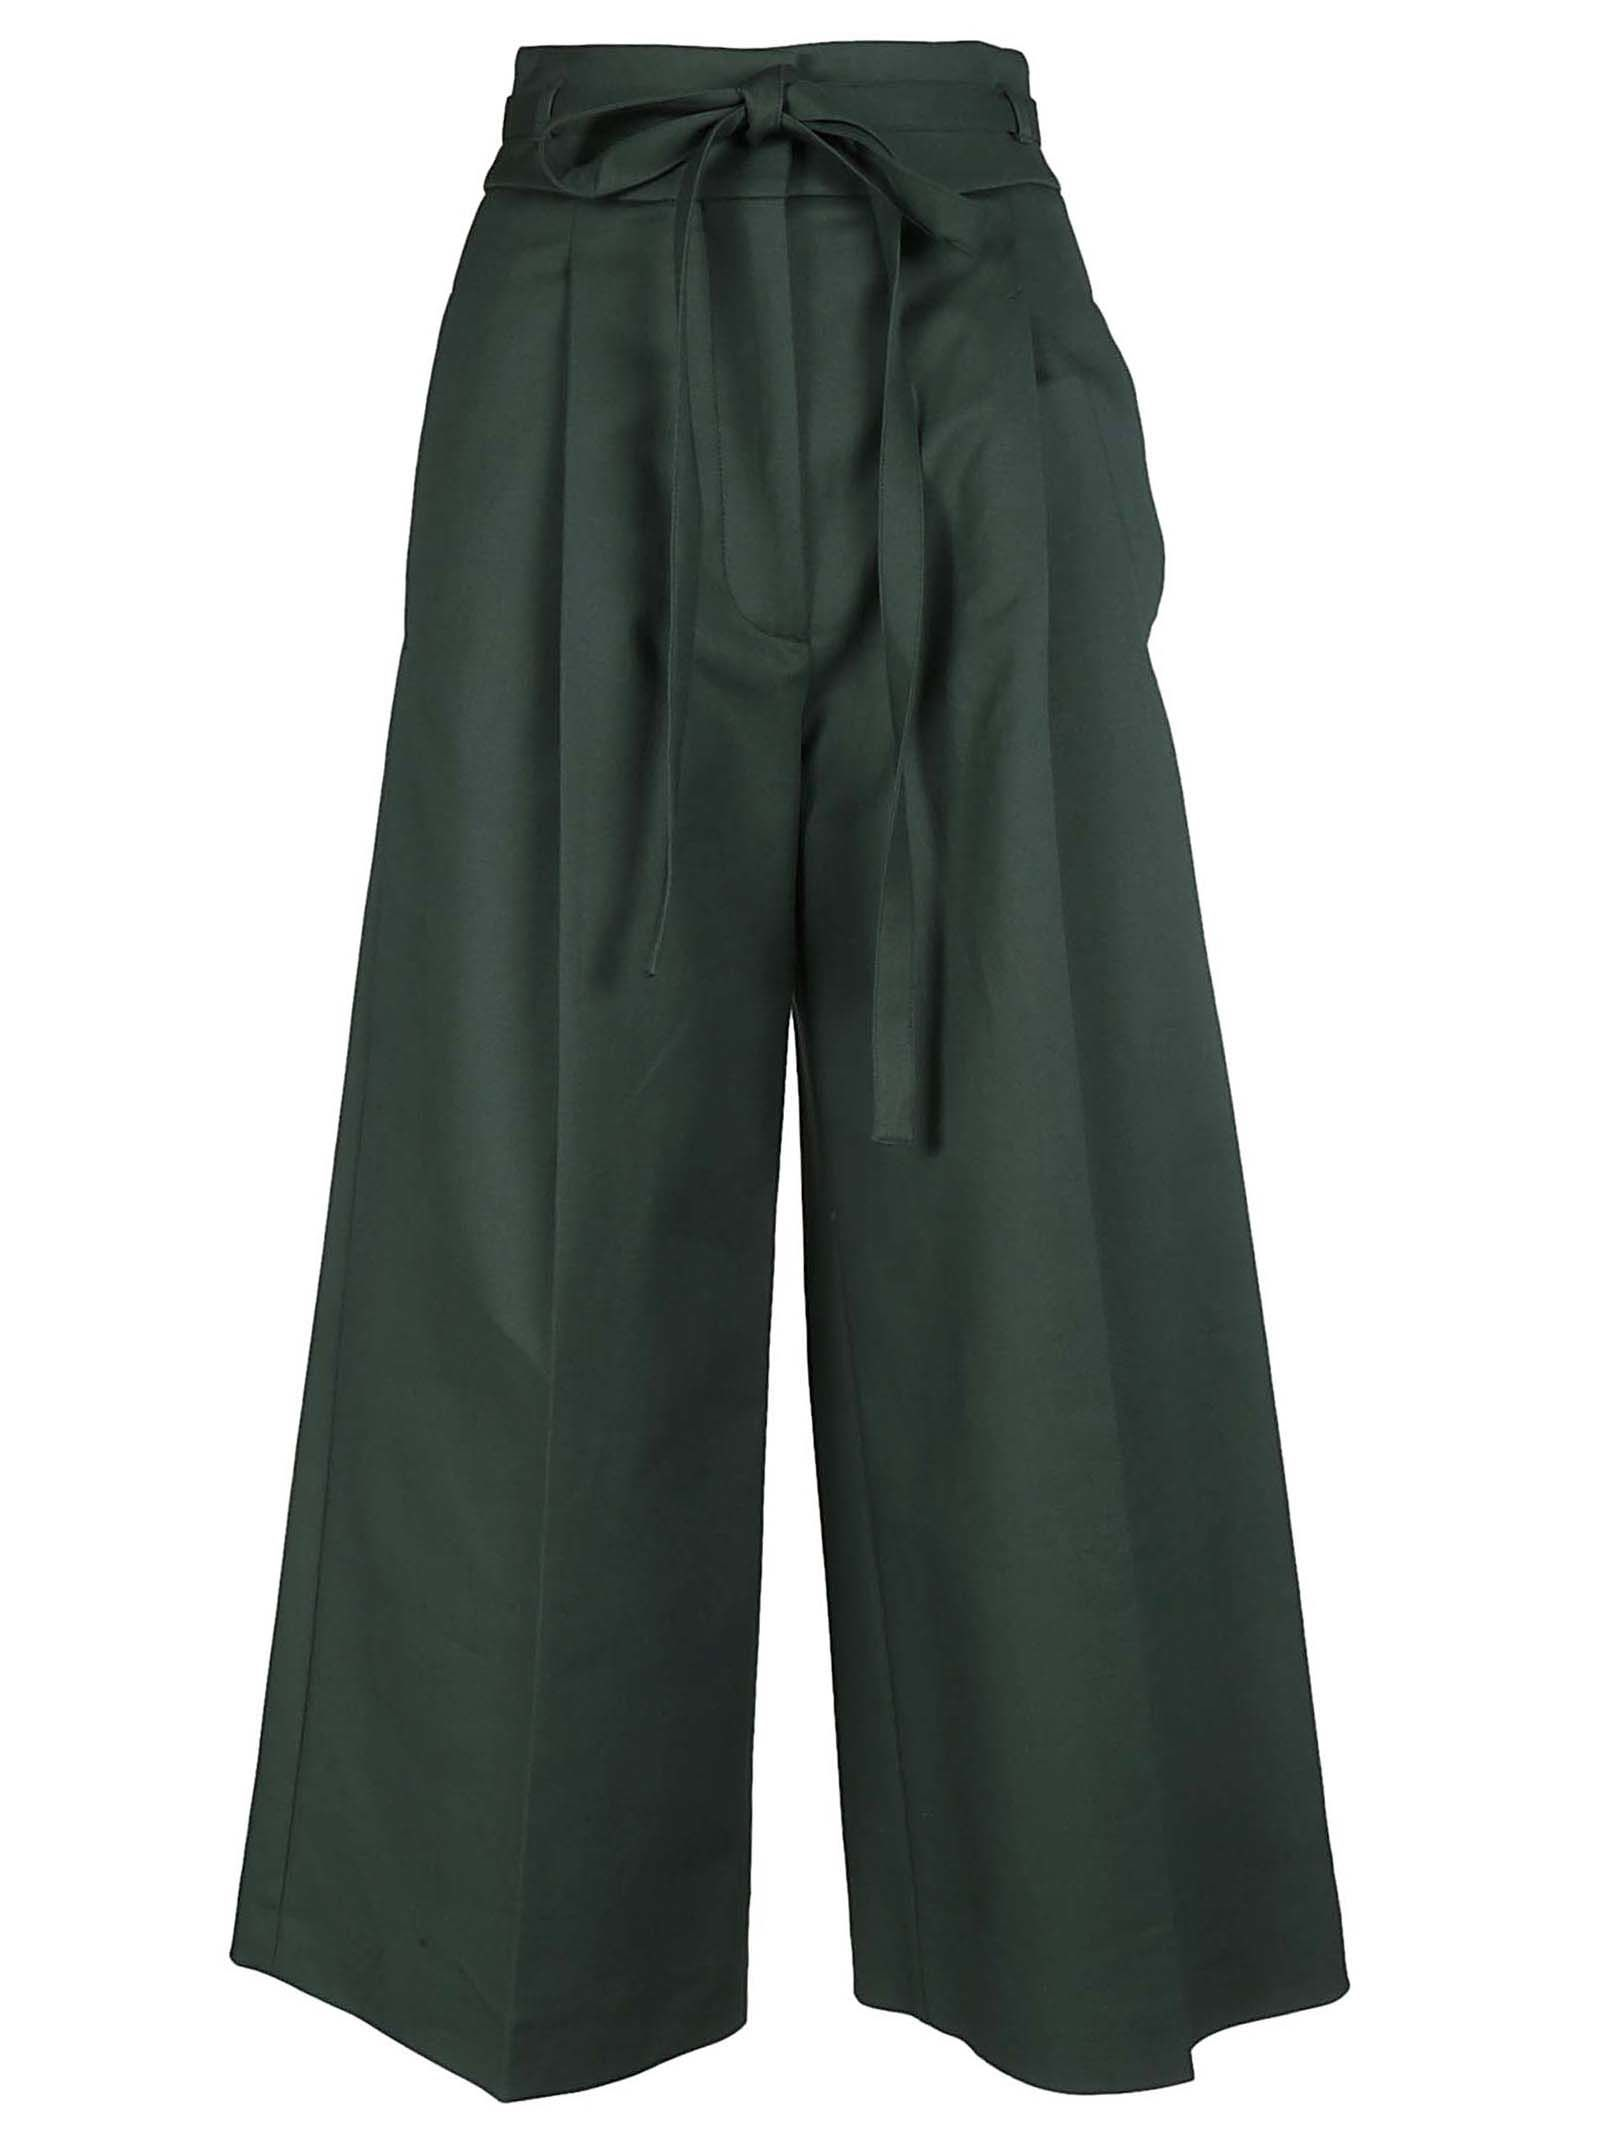 WIDE-LEG CROPPED TROUSERS from Italist.com